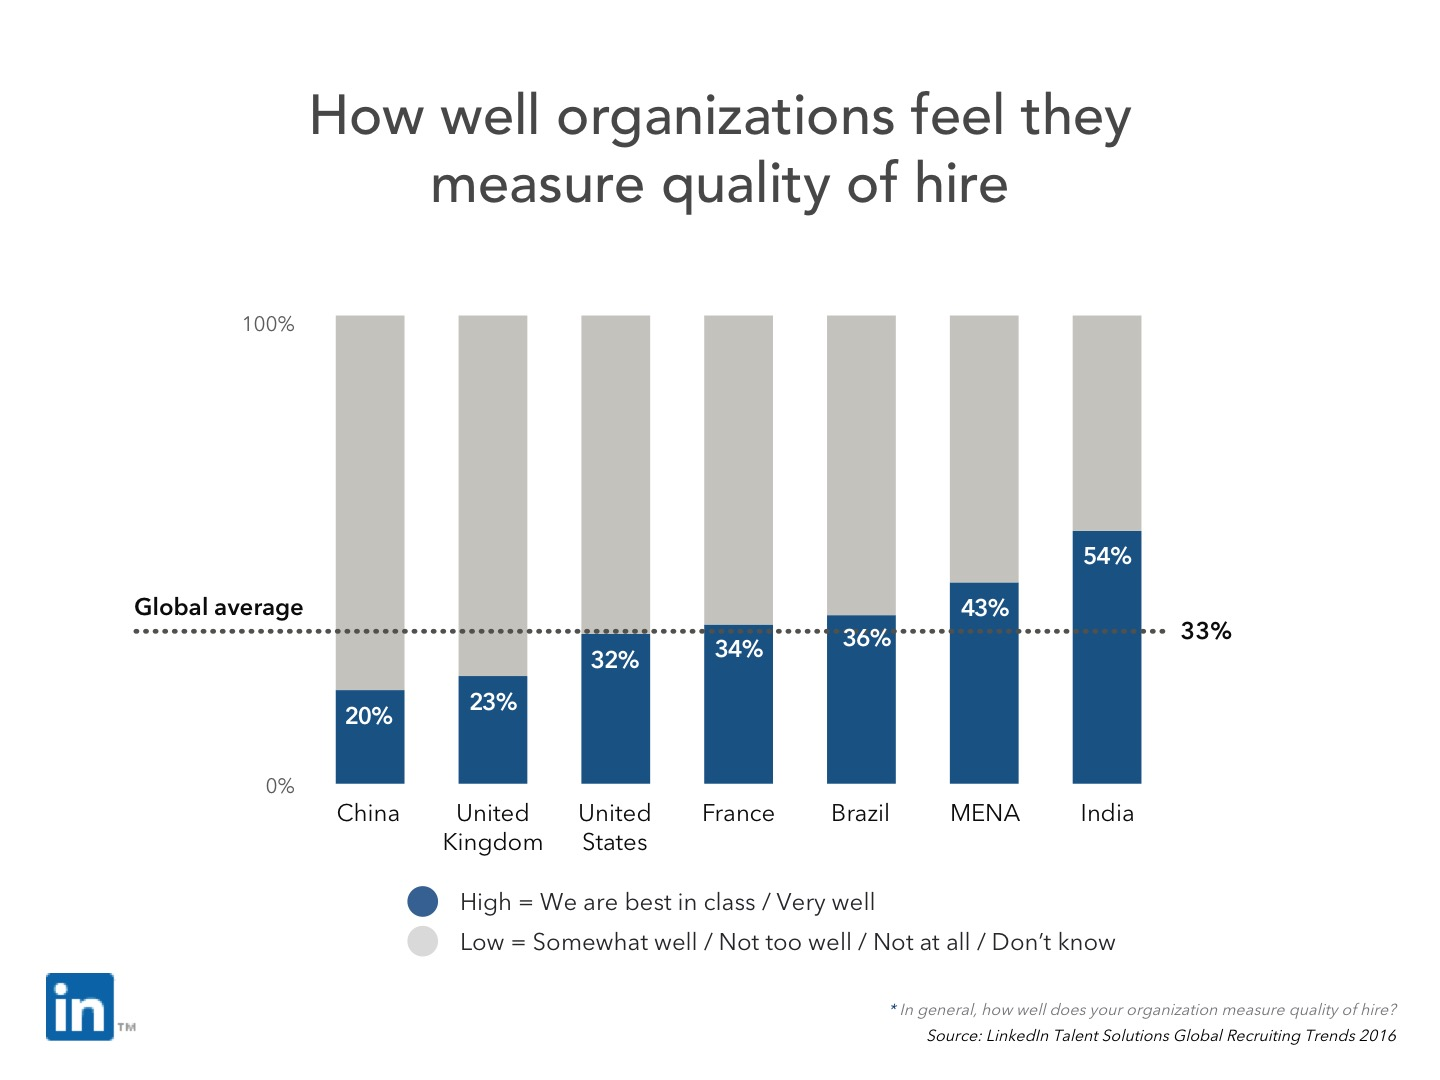 quality of hire satisfaction